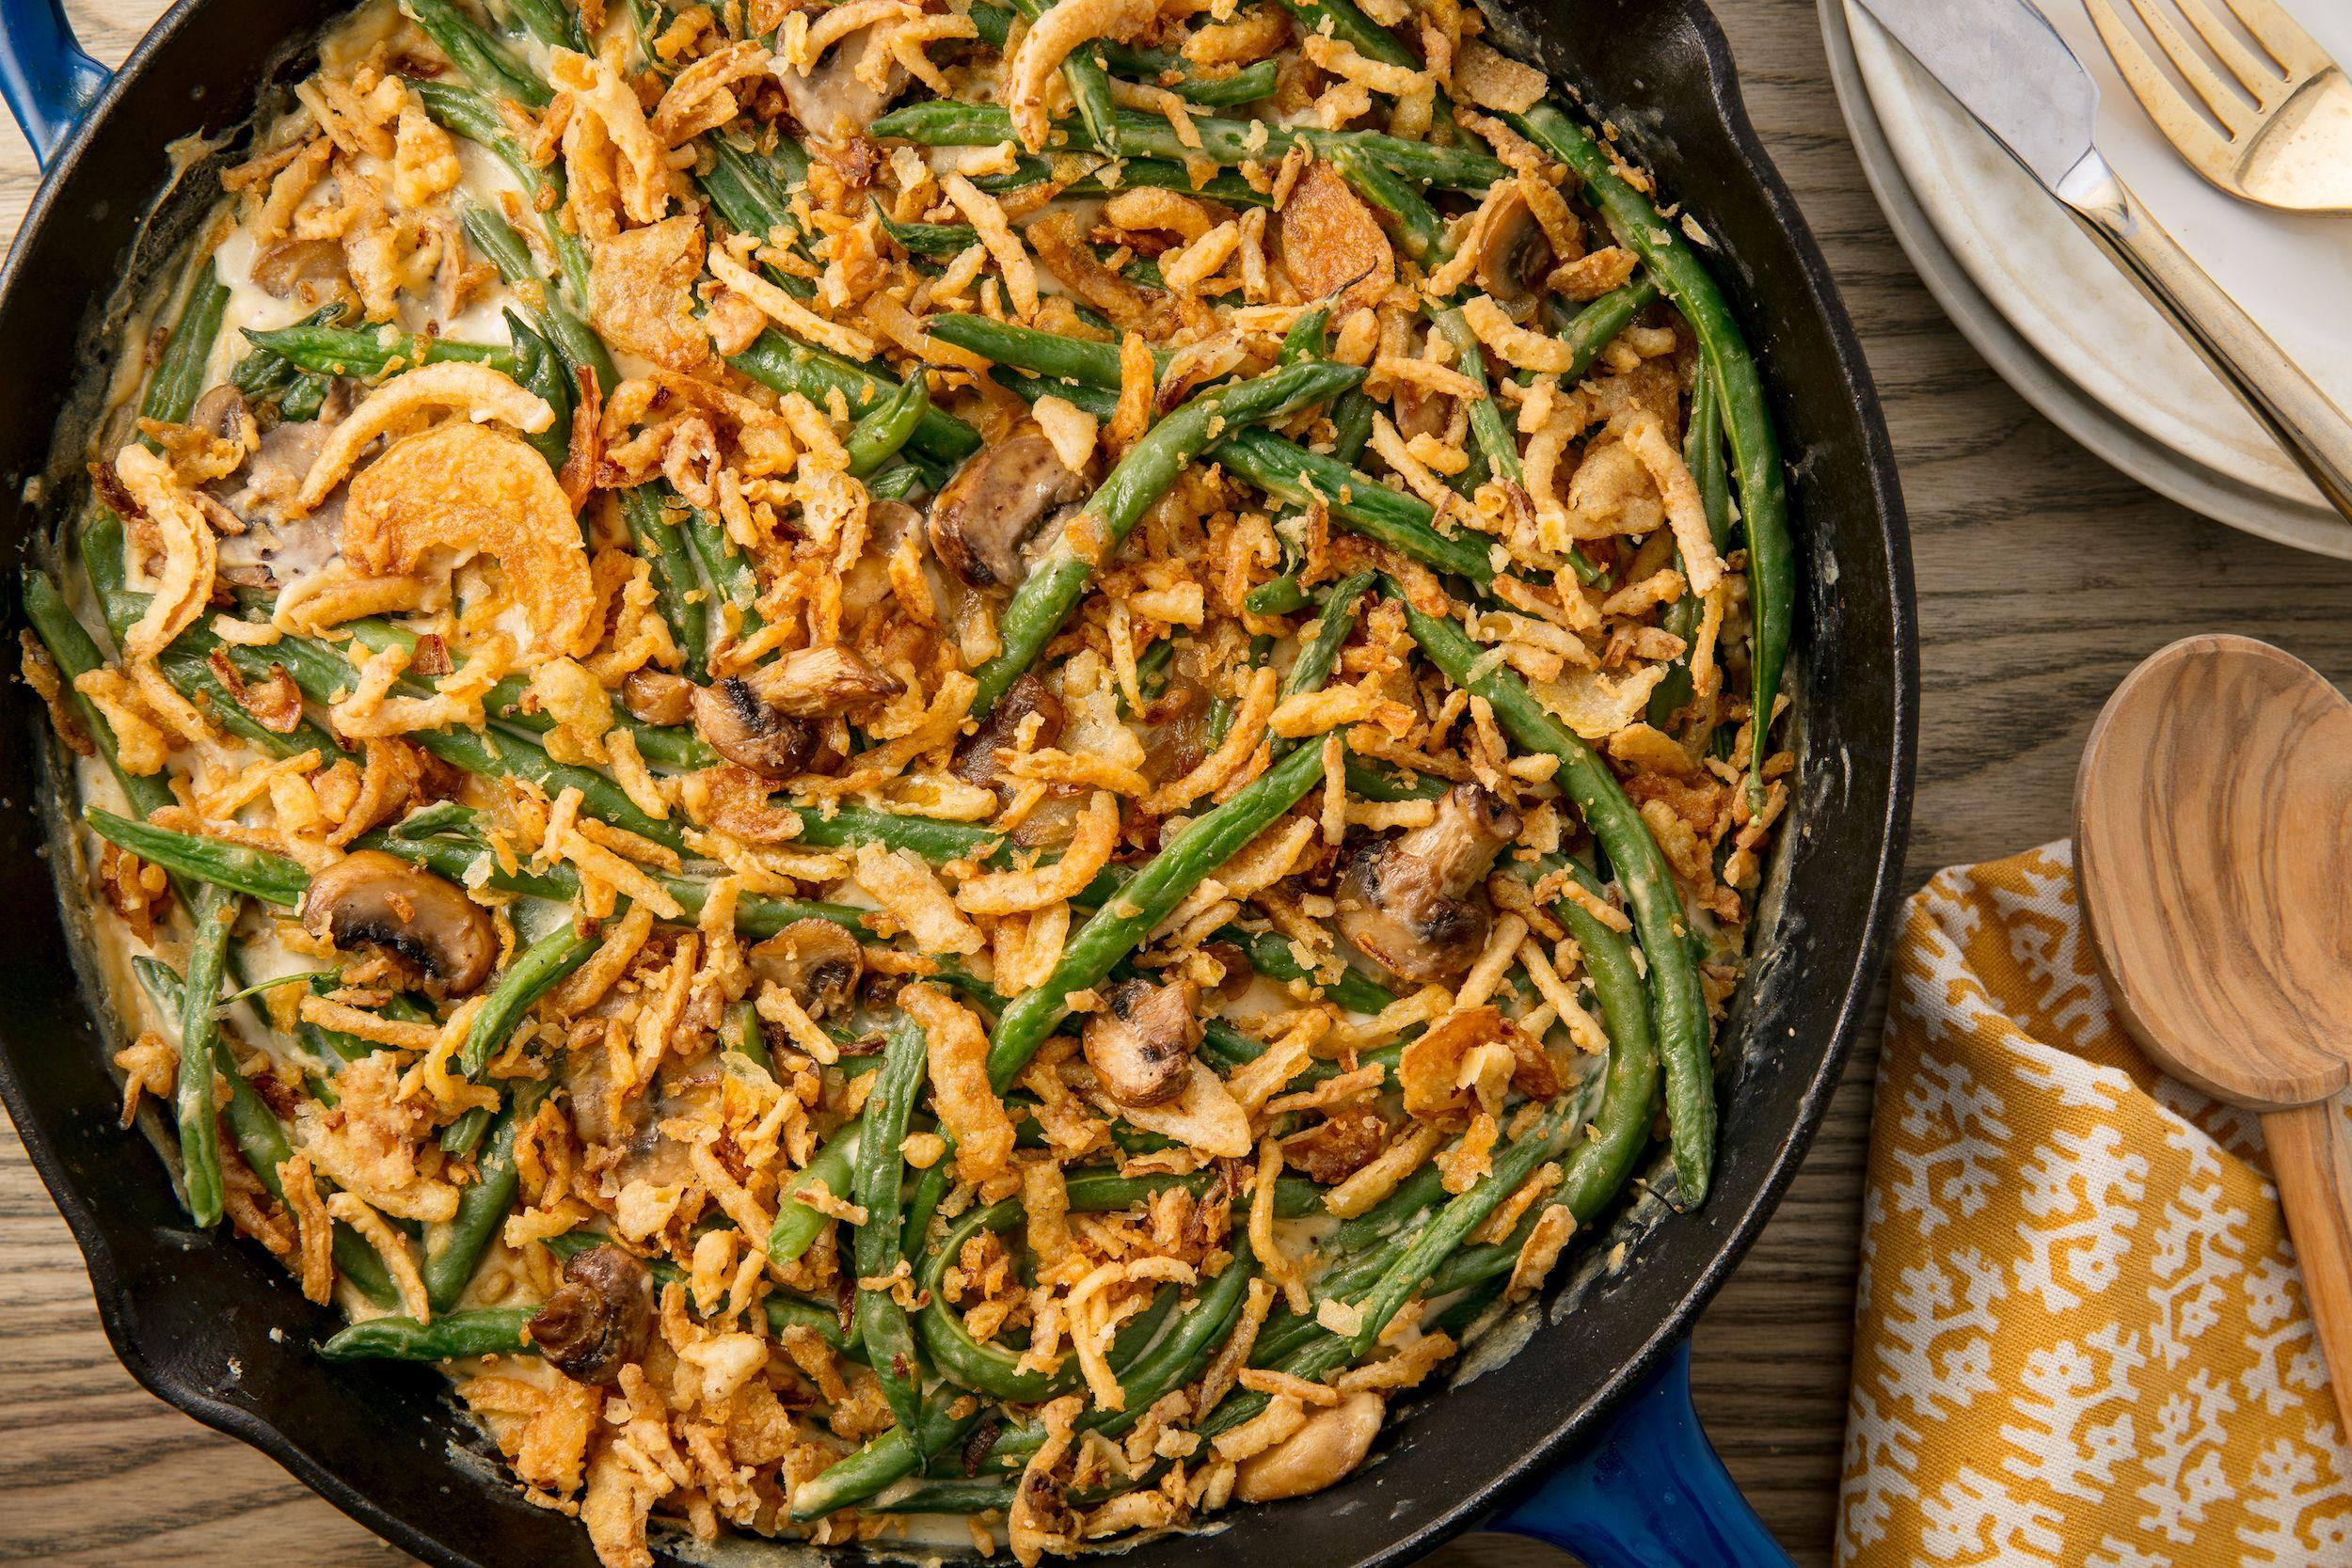 """<p>When <a href=""""http://www.delish.com/holiday-recipes/thanksgiving/"""" rel=""""nofollow noopener"""" target=""""_blank"""" data-ylk=""""slk:planning a Thanksgiving meal"""" class=""""link rapid-noclick-resp"""">planning a Thanksgiving meal</a>, the turkey may be the centerpiece, but it's all of the <a href=""""http://www.delish.com/cooking/g1970/side-dishes/"""" rel=""""nofollow noopener"""" target=""""_blank"""" data-ylk=""""slk:side dishes"""" class=""""link rapid-noclick-resp"""">side dishes</a> that make the feast complete. Save this go-to list of Thanksgiving vegetable side dish recipes to make your holiday planning a little easier. Plus, get <a href=""""https://www.delish.com/holiday-recipes/g248/easy-thanksgiving-side-dishes/"""" rel=""""nofollow noopener"""" target=""""_blank"""" data-ylk=""""slk:more great Thanksgiving sides"""" class=""""link rapid-noclick-resp"""">more great Thanksgiving sides</a>!</p>"""